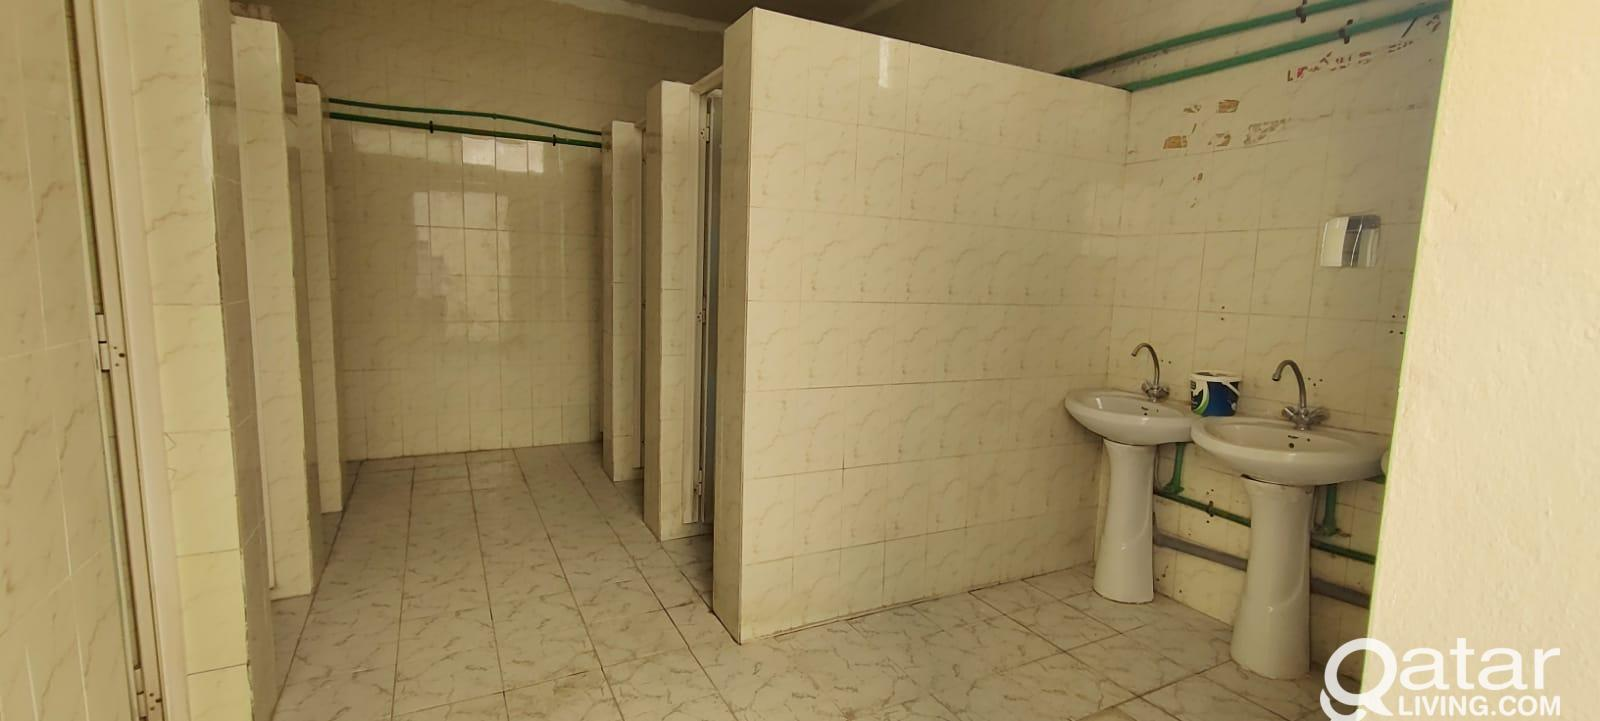 29 Room For Rent